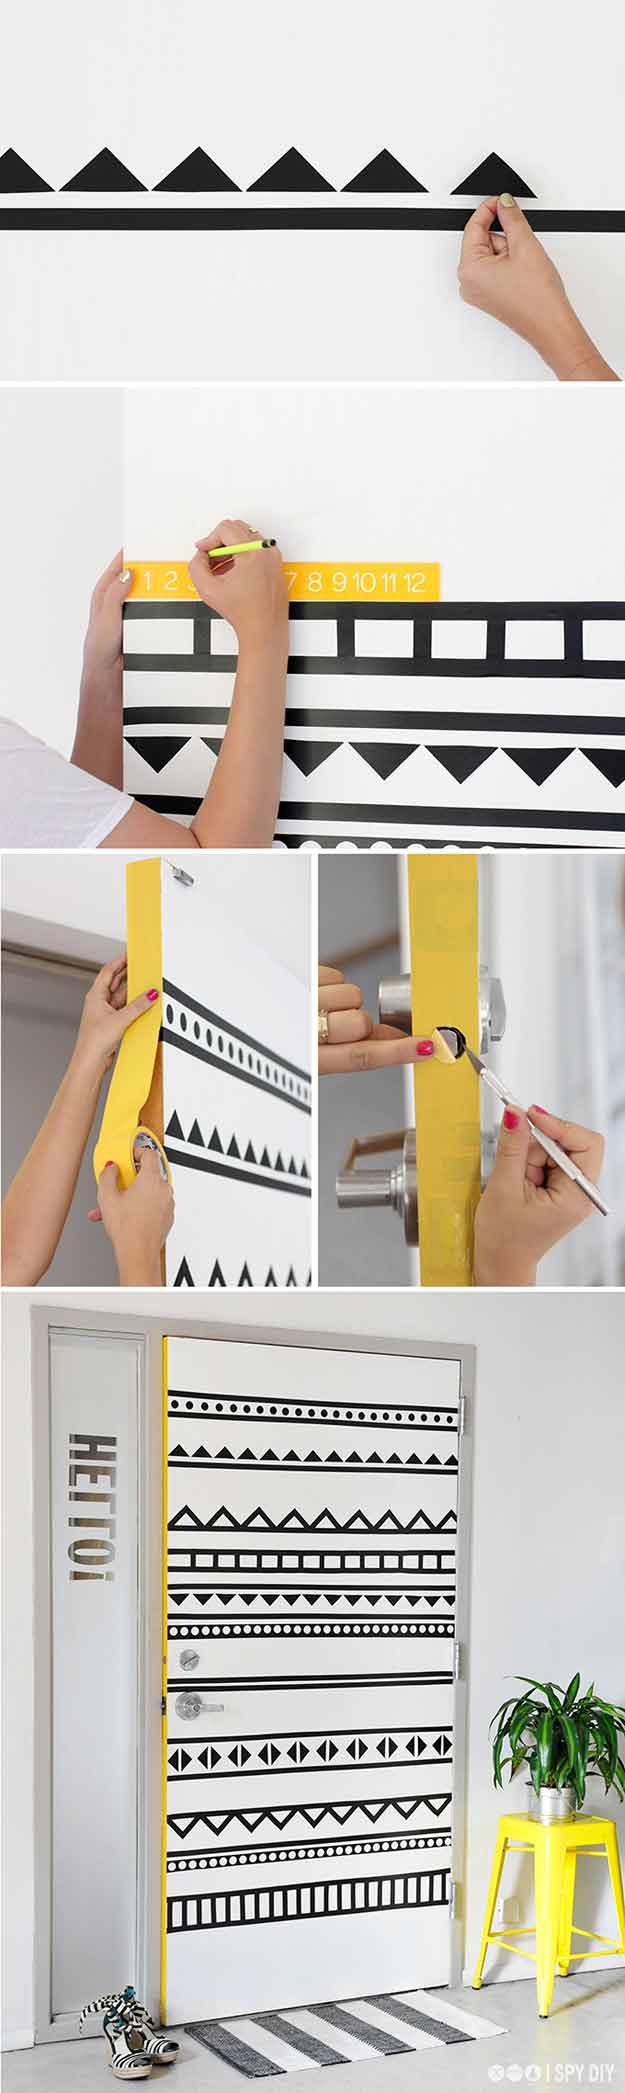 Teen bedroom diy decorating ideas - 37 Insanely Cute Teen Bedroom Ideas For Diy Decor Diy Door Art